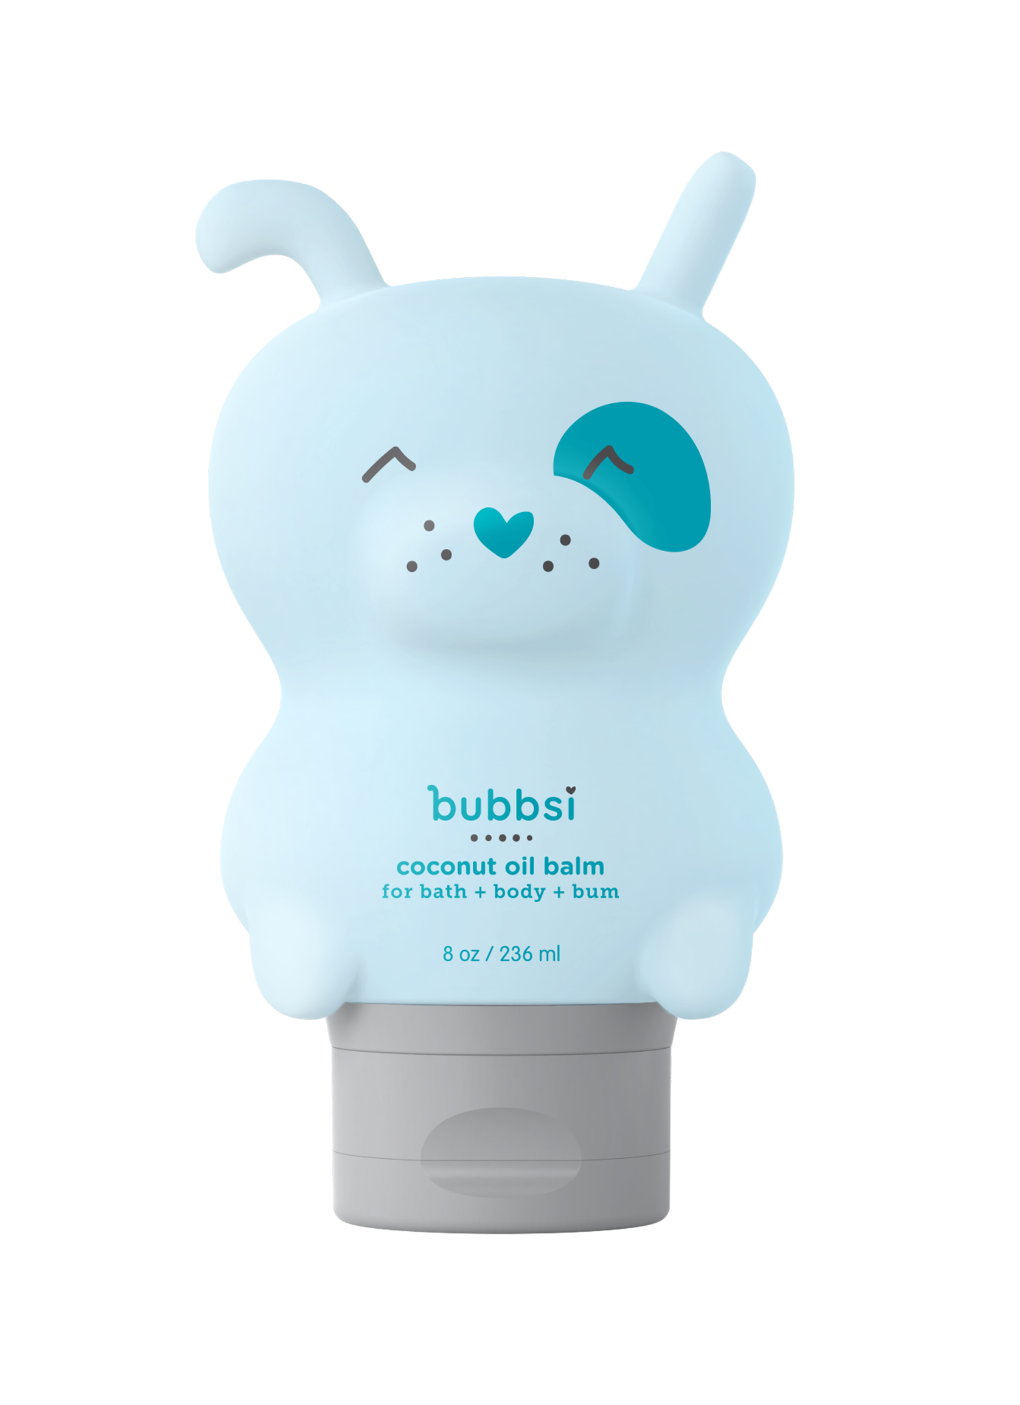 Bubbsi Coconut Oil Balm